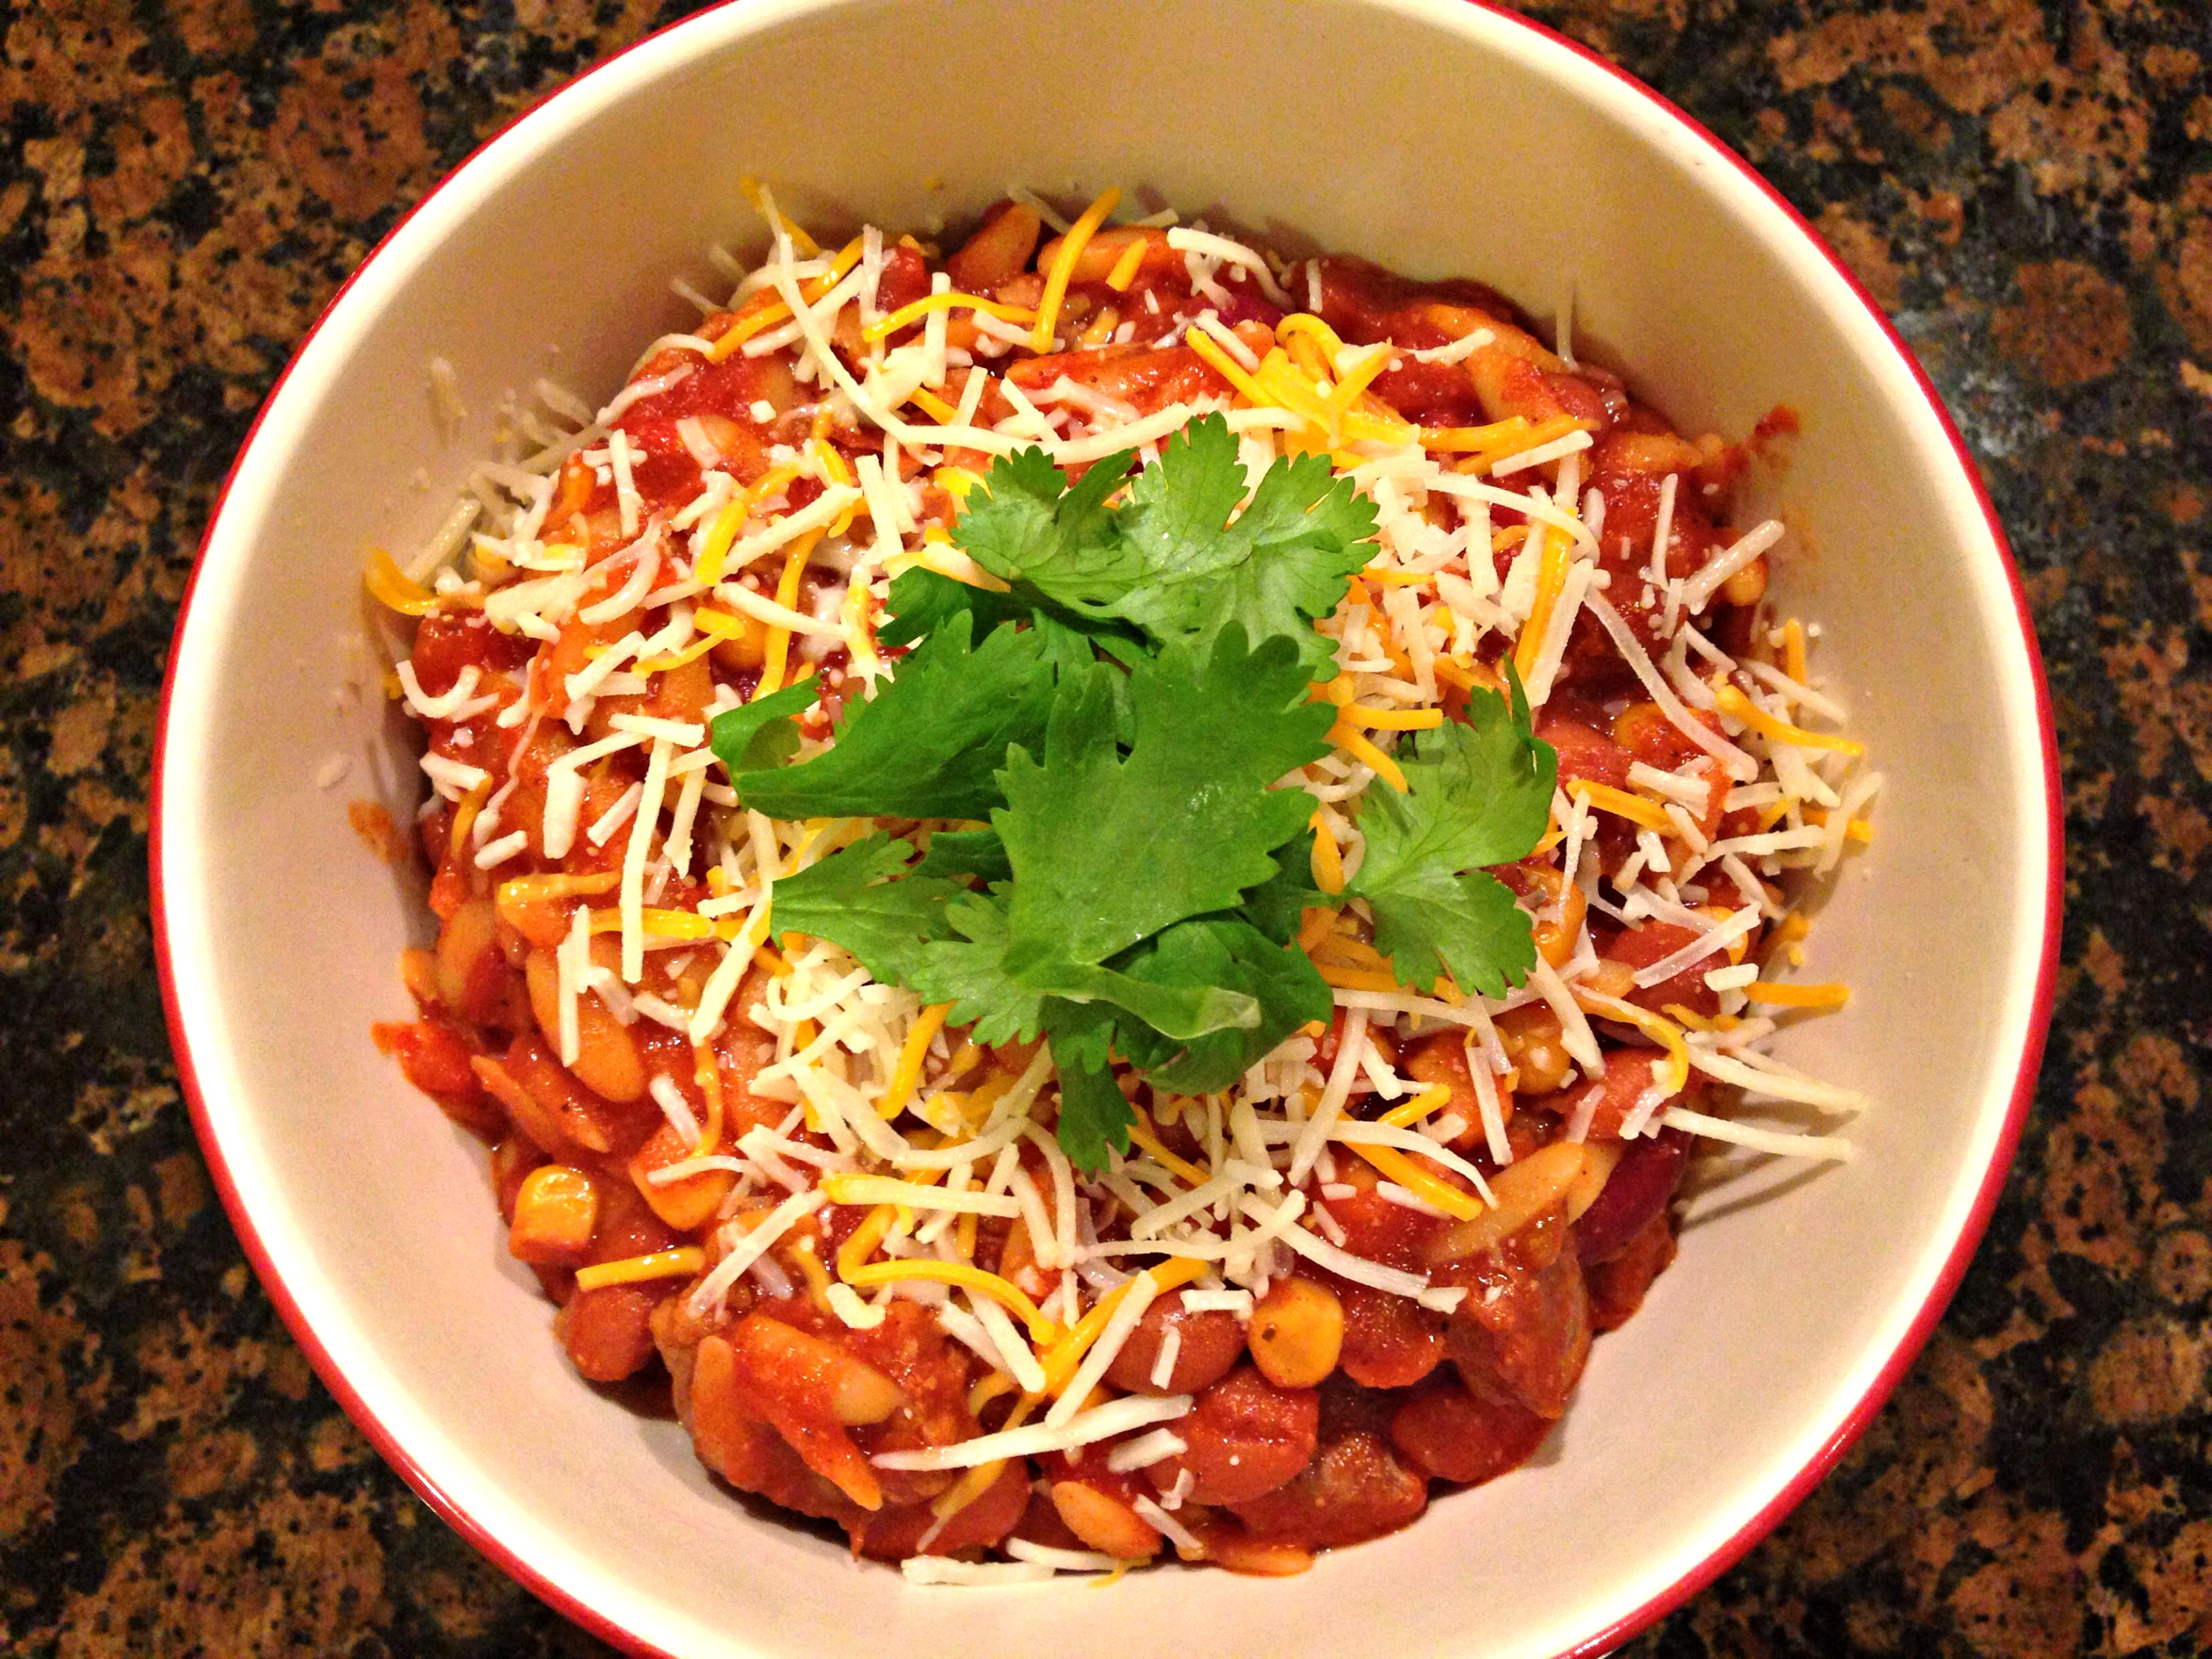 National Prime Rib Day | Prime Rib Chili – The Foodie Patootie